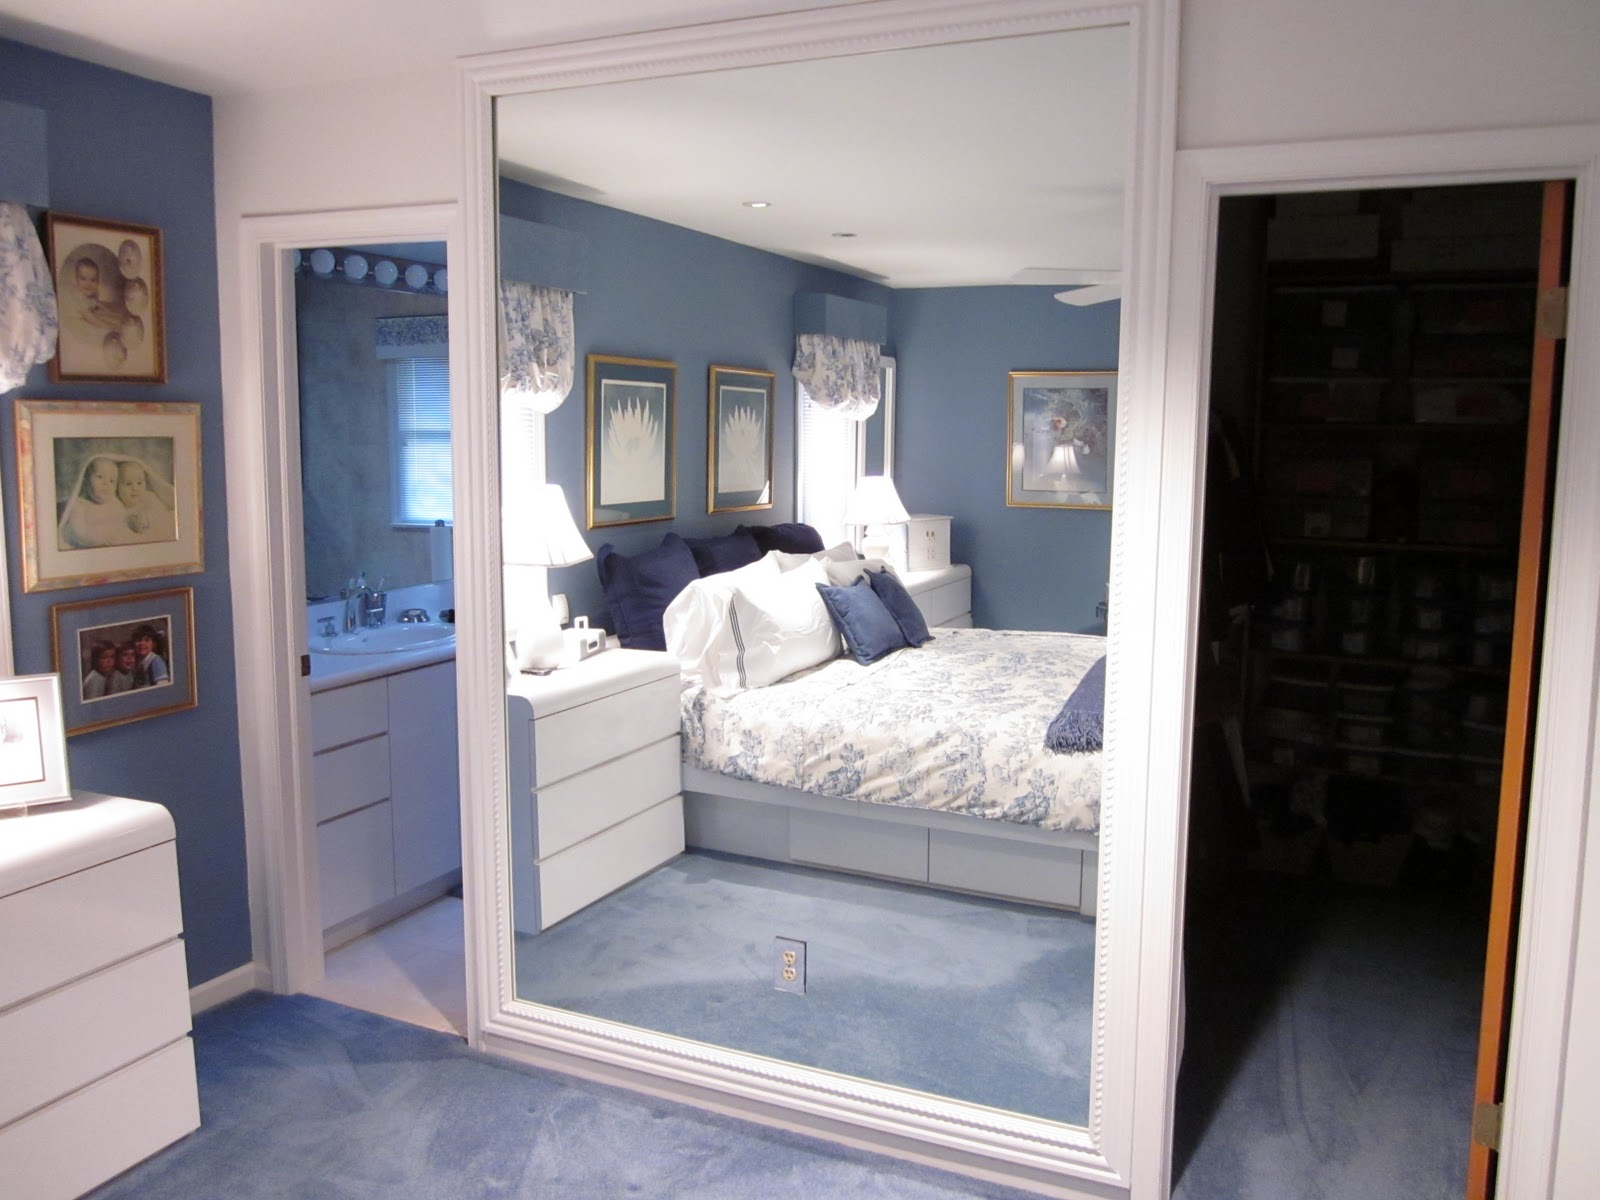 Diy by design framing a large mirror framing a large mirror amipublicfo Choice Image